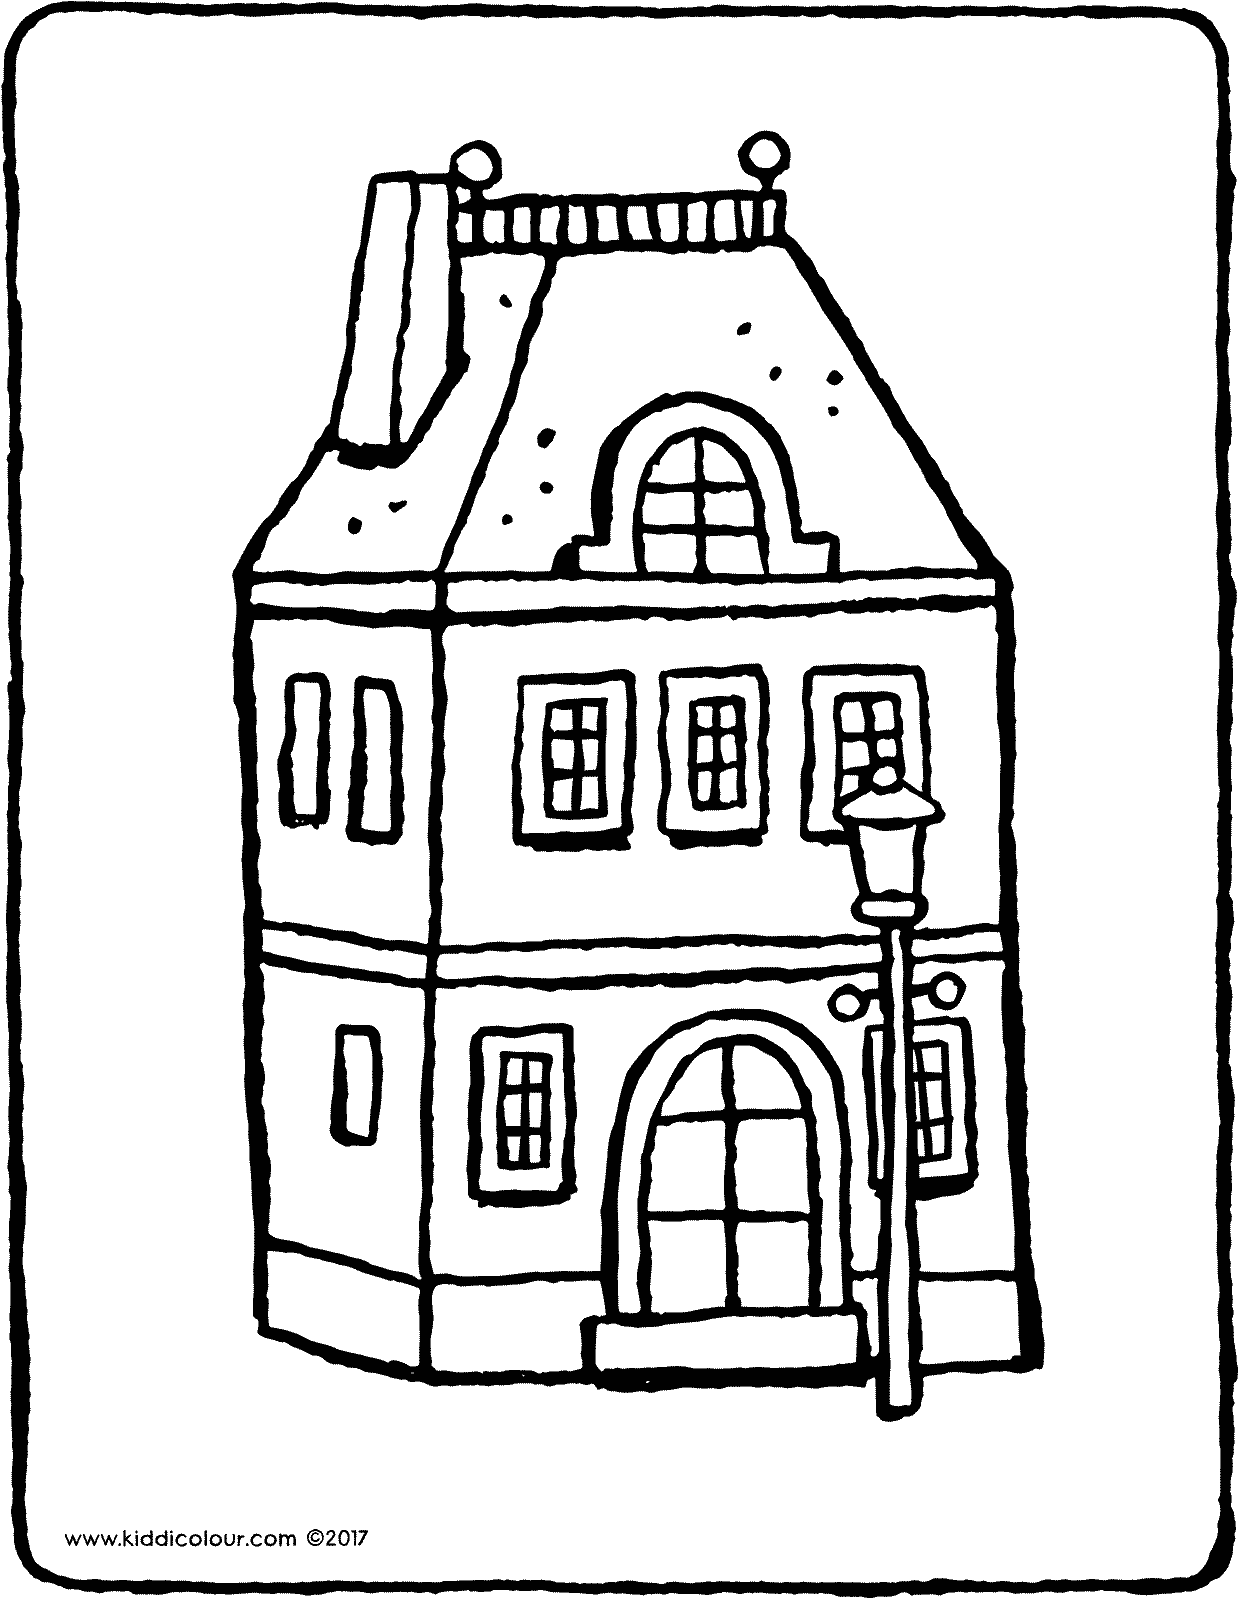 house with lamppost colouring page page drawing picture 01V